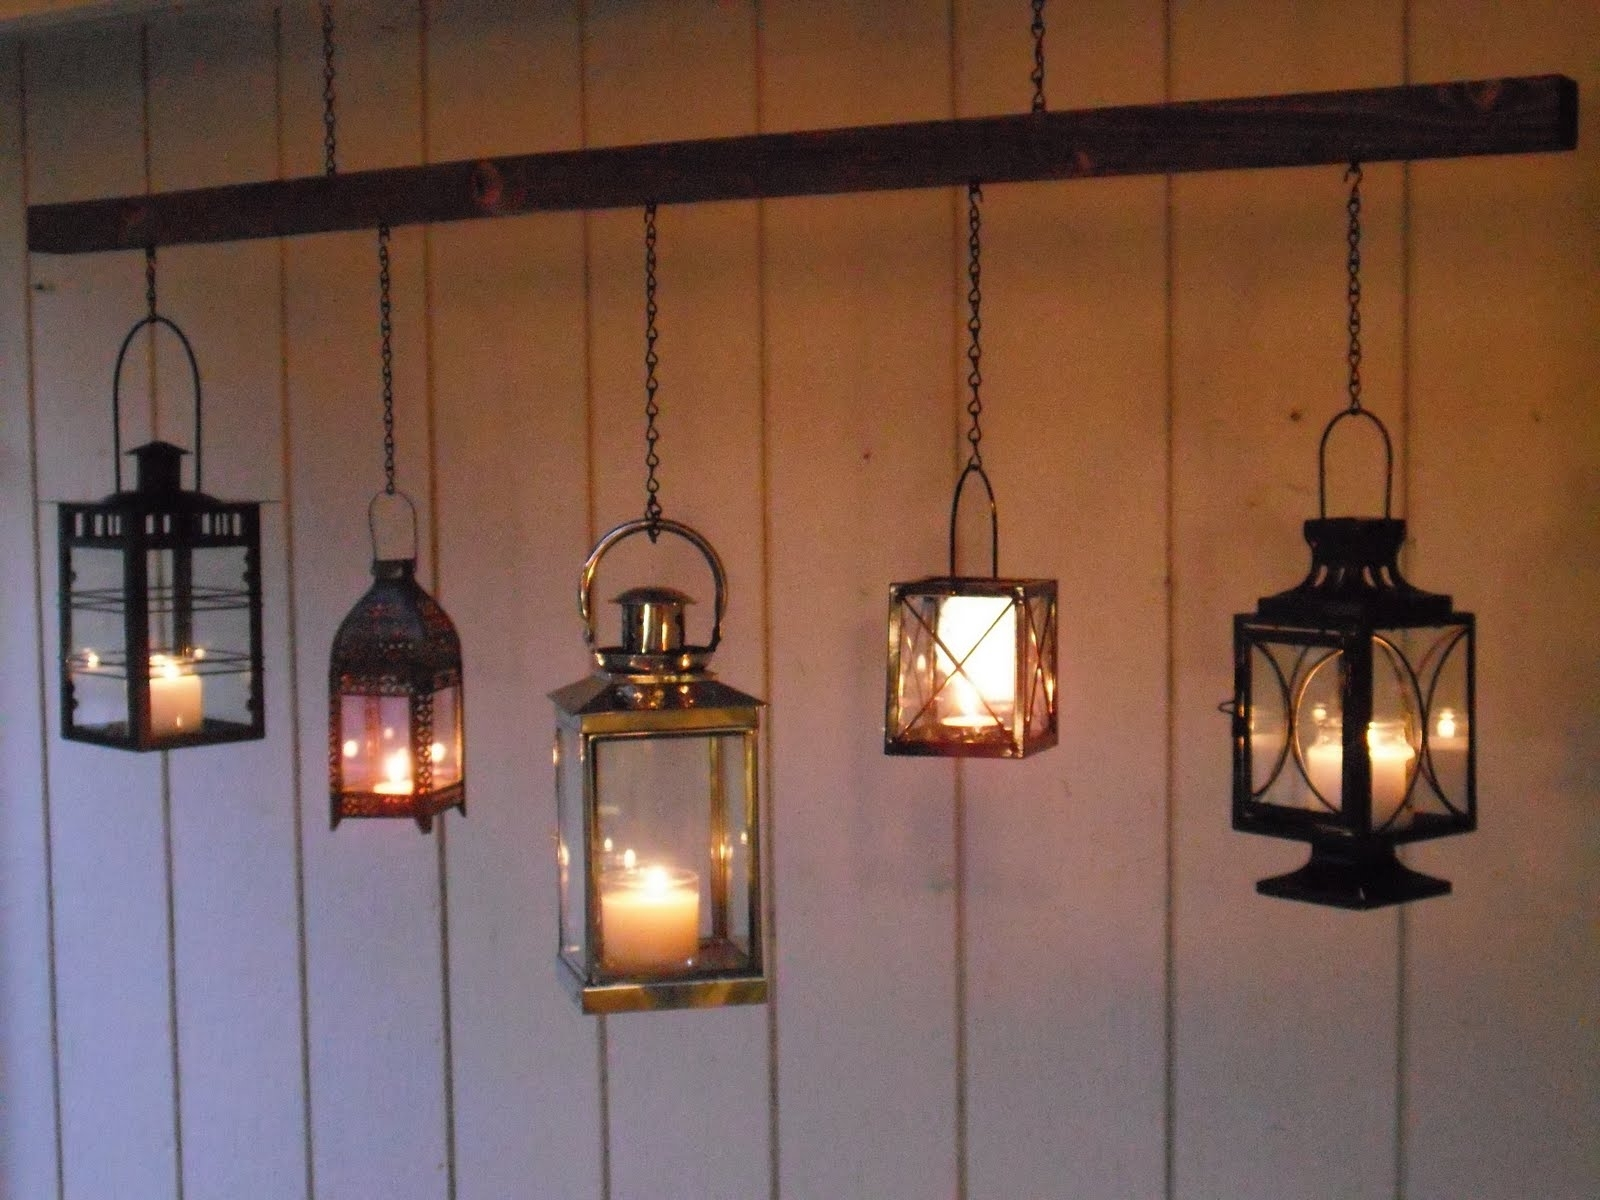 Latest Outdoor Hanging Lanterns For Candles With Regard To Wedding Decoration Hanging Candle Lanterns – Matt And Jentry Home Design (View 6 of 20)